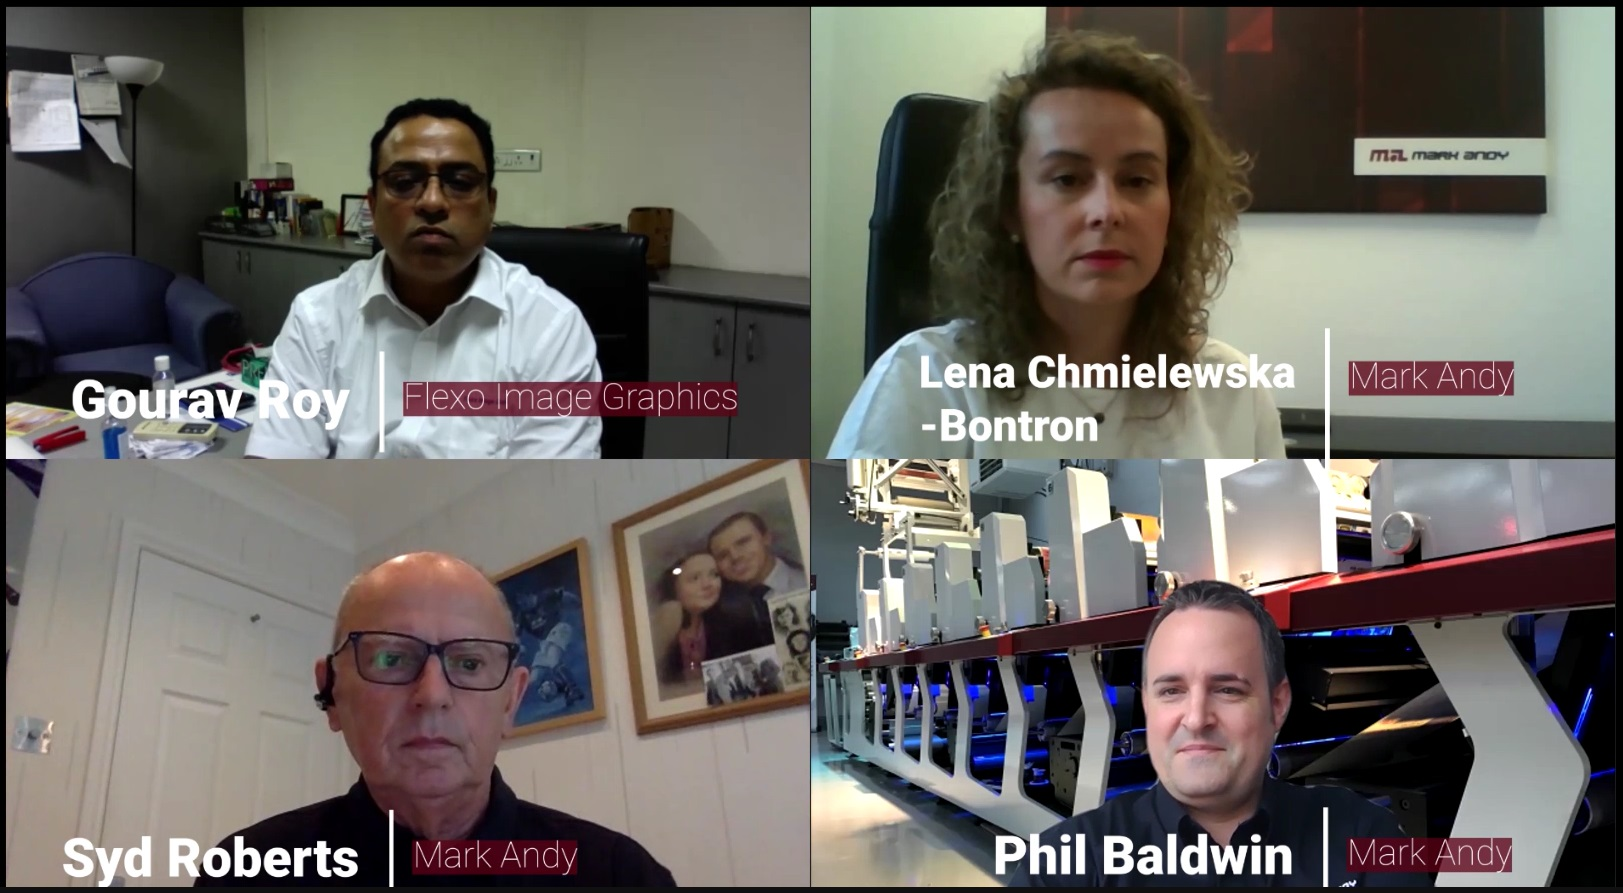 Hosts of the Mark Andy's Webinar With Flexo Image Graphics